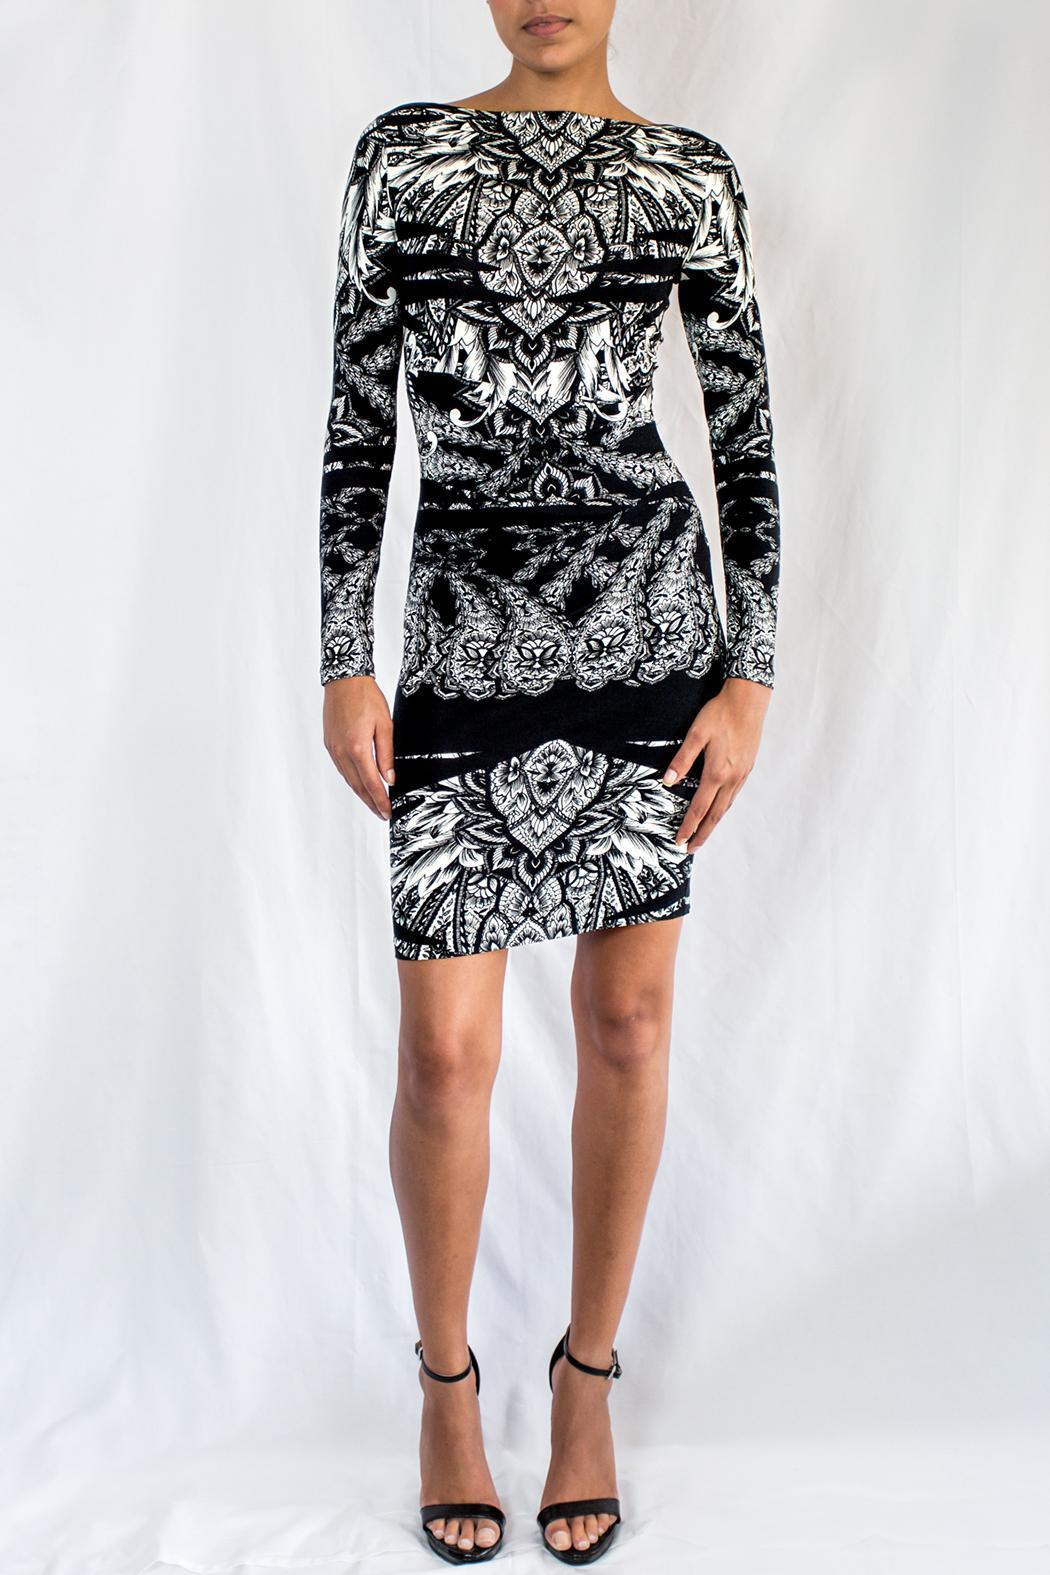 Nicole Miller Printed Jersey Dress - Front Full Image